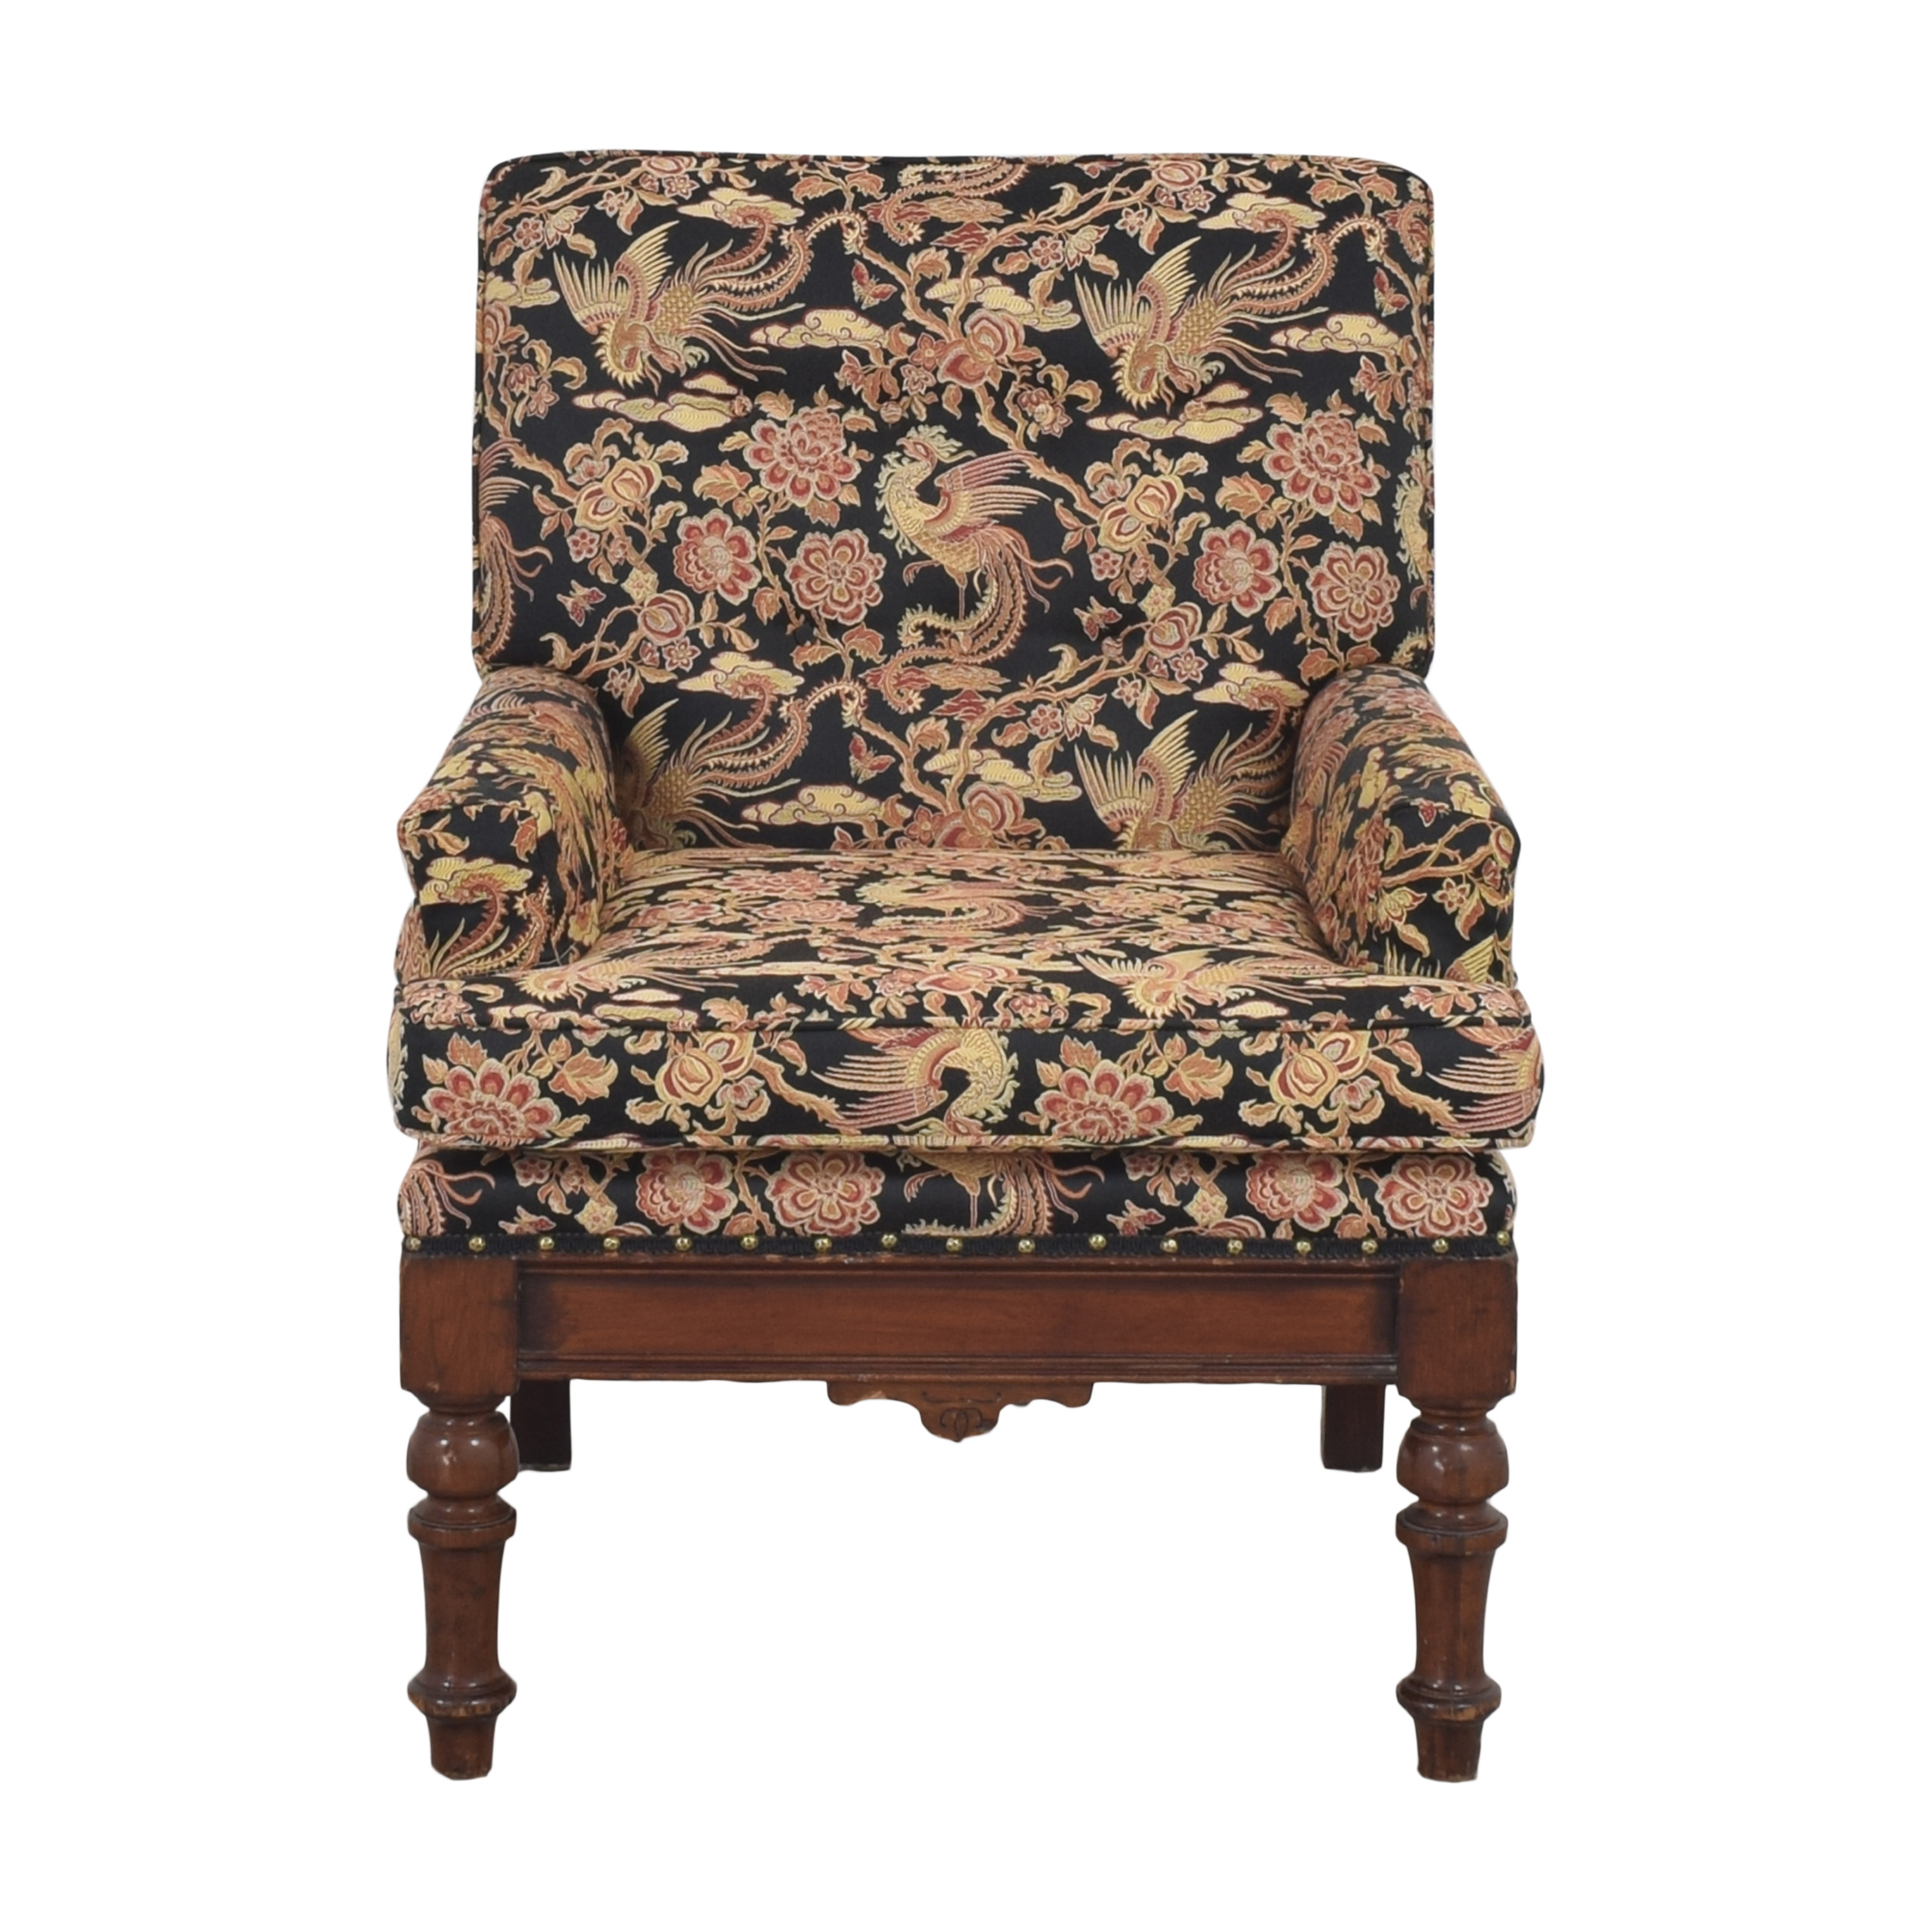 Floral Upholstered Accent Chair / Accent Chairs